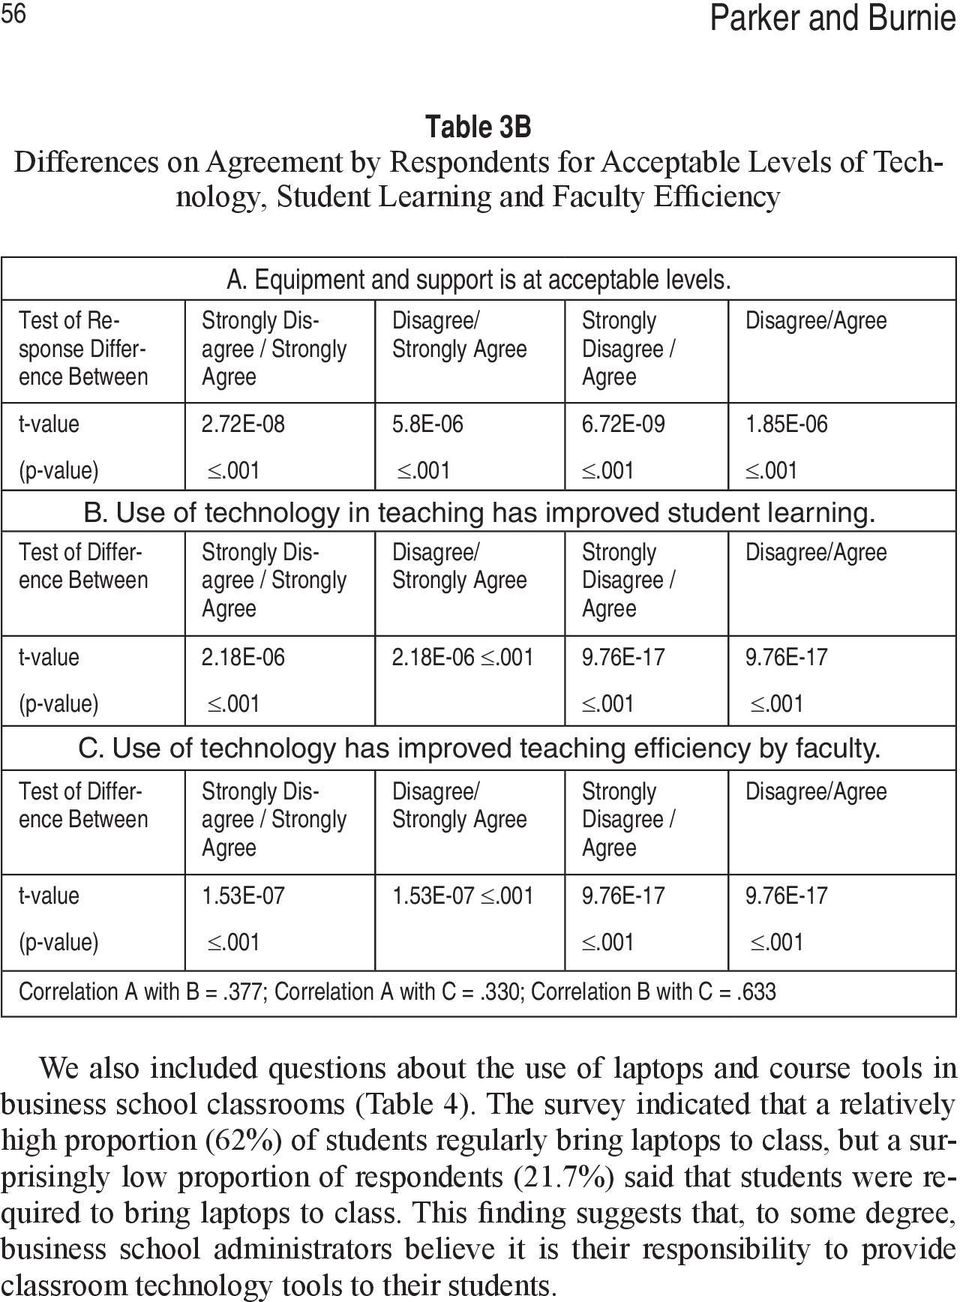 Use of technology in teaching has improved student learning. Test of Difference Between t-value (p-value) Strongly Disagree / Strongly Agree 2.18E-06 Disagree/ Strongly Agree 2.